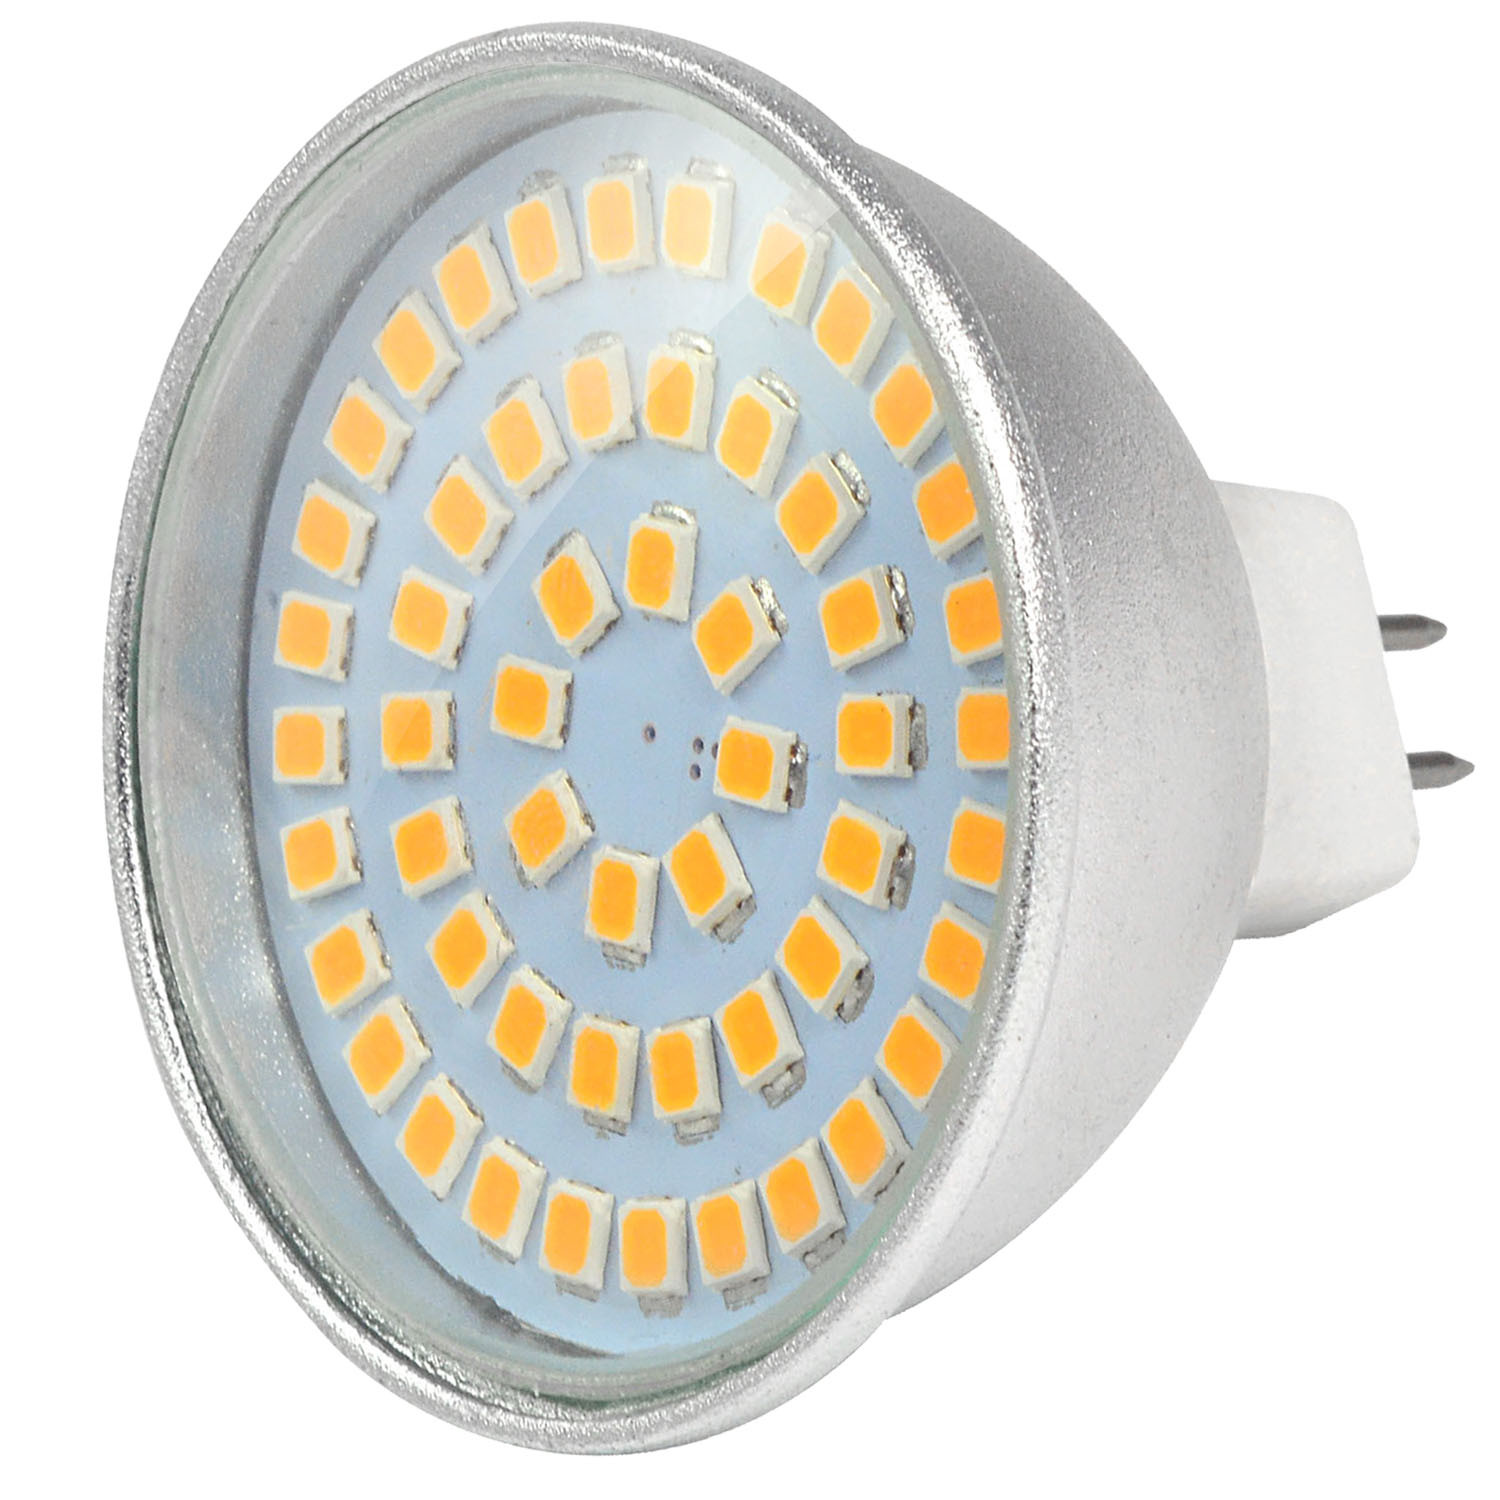 MENGS® MR16 5W LED Spotlight 54x 2835 SMD LED Bulb Lamp AC/DC 12V In Warm White Energy-Saving Light